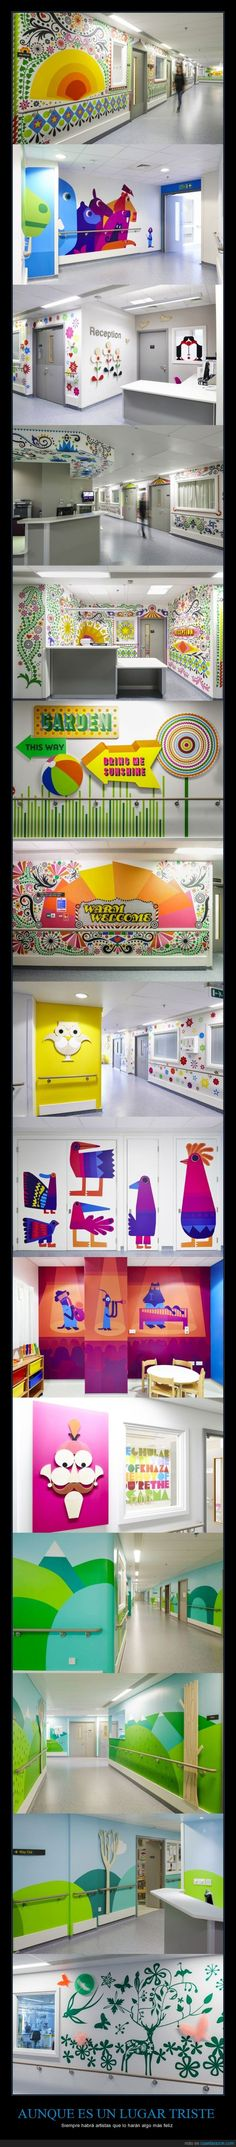 Decorando un hospital infantil en Londres